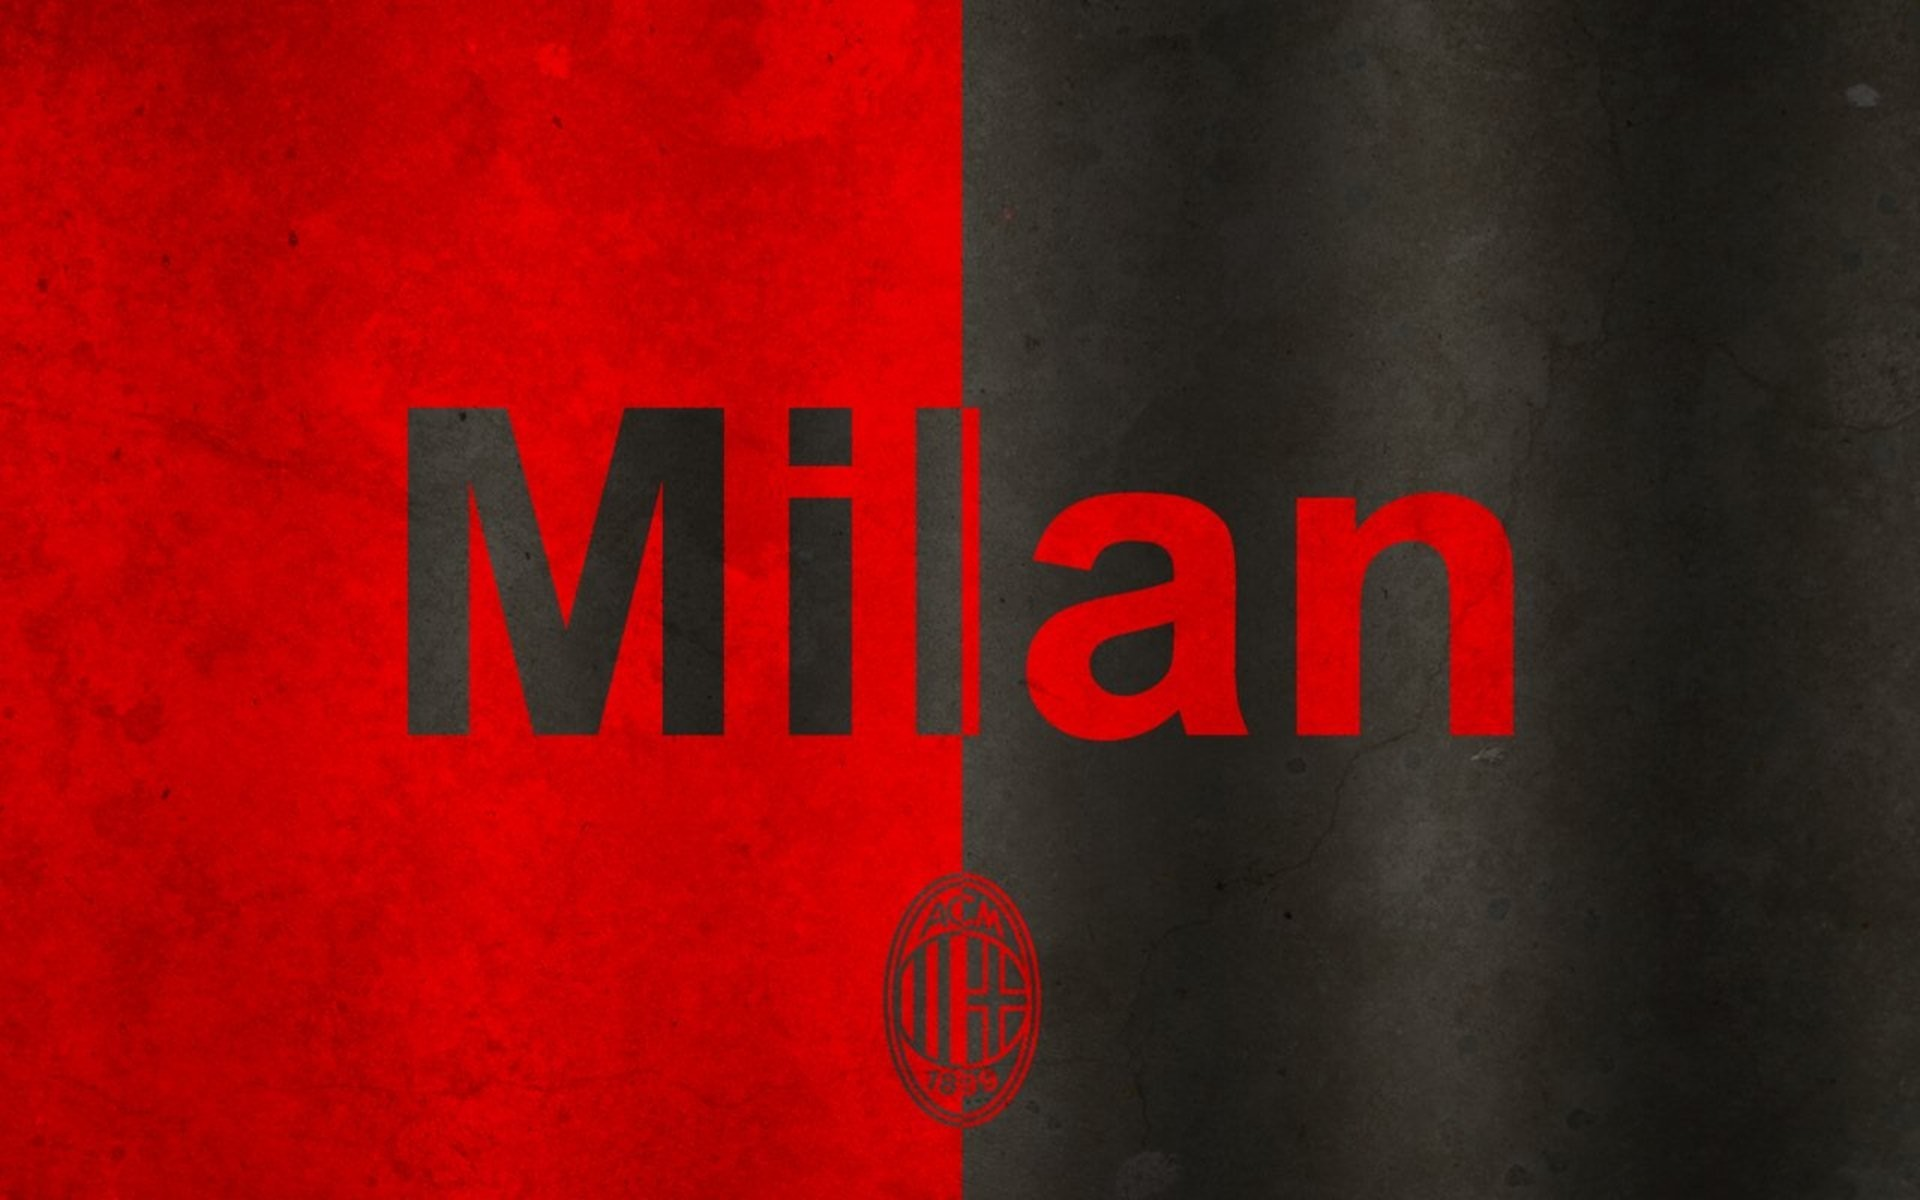 logo ac milan wallpaper 2018 73 pictures logo ac milan wallpaper 2018 73 pictures